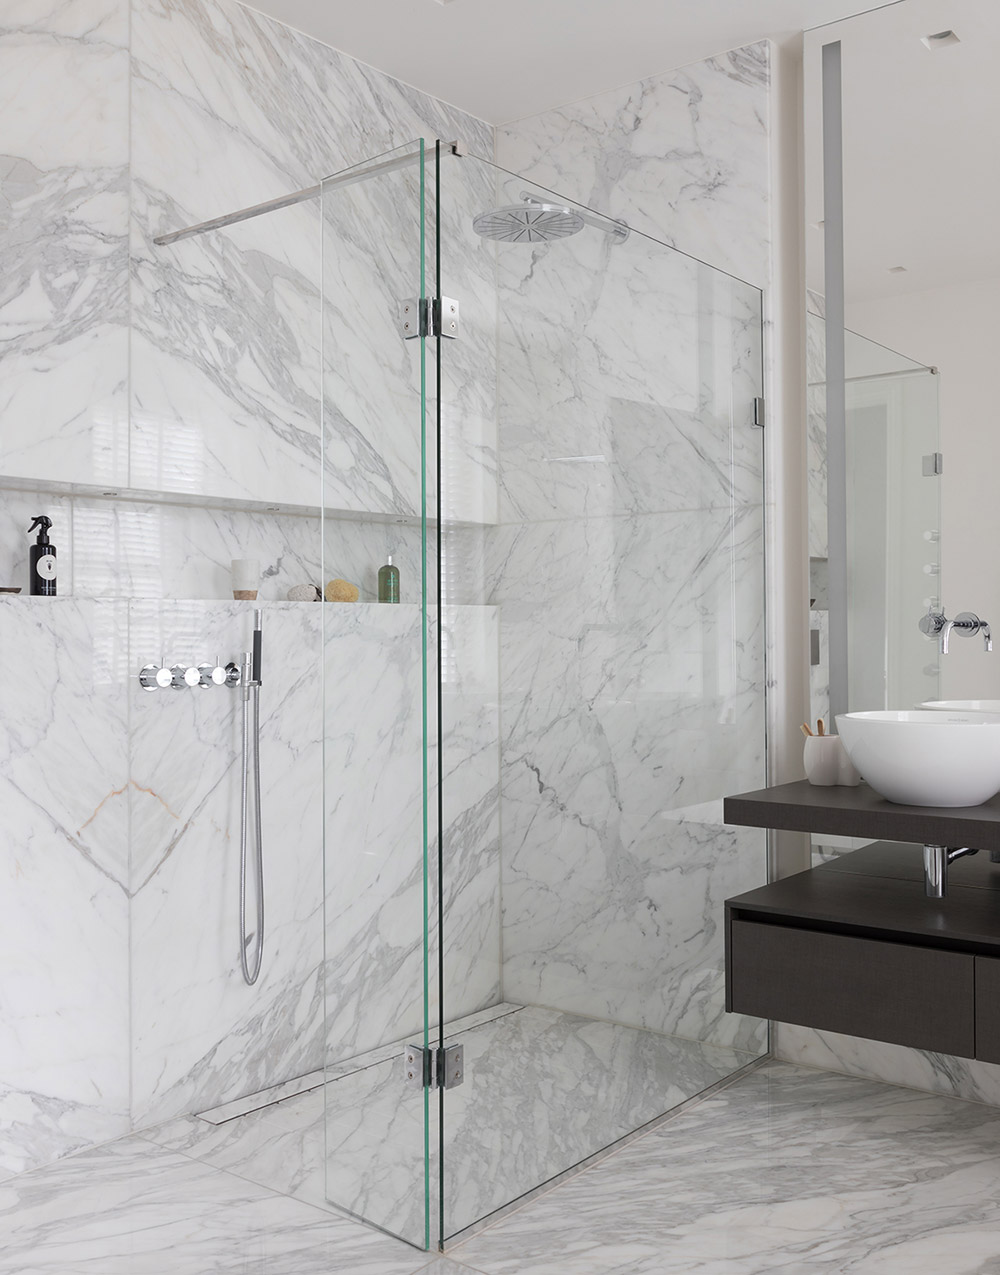 White marble carrara cladded bathroom with walk-in shower